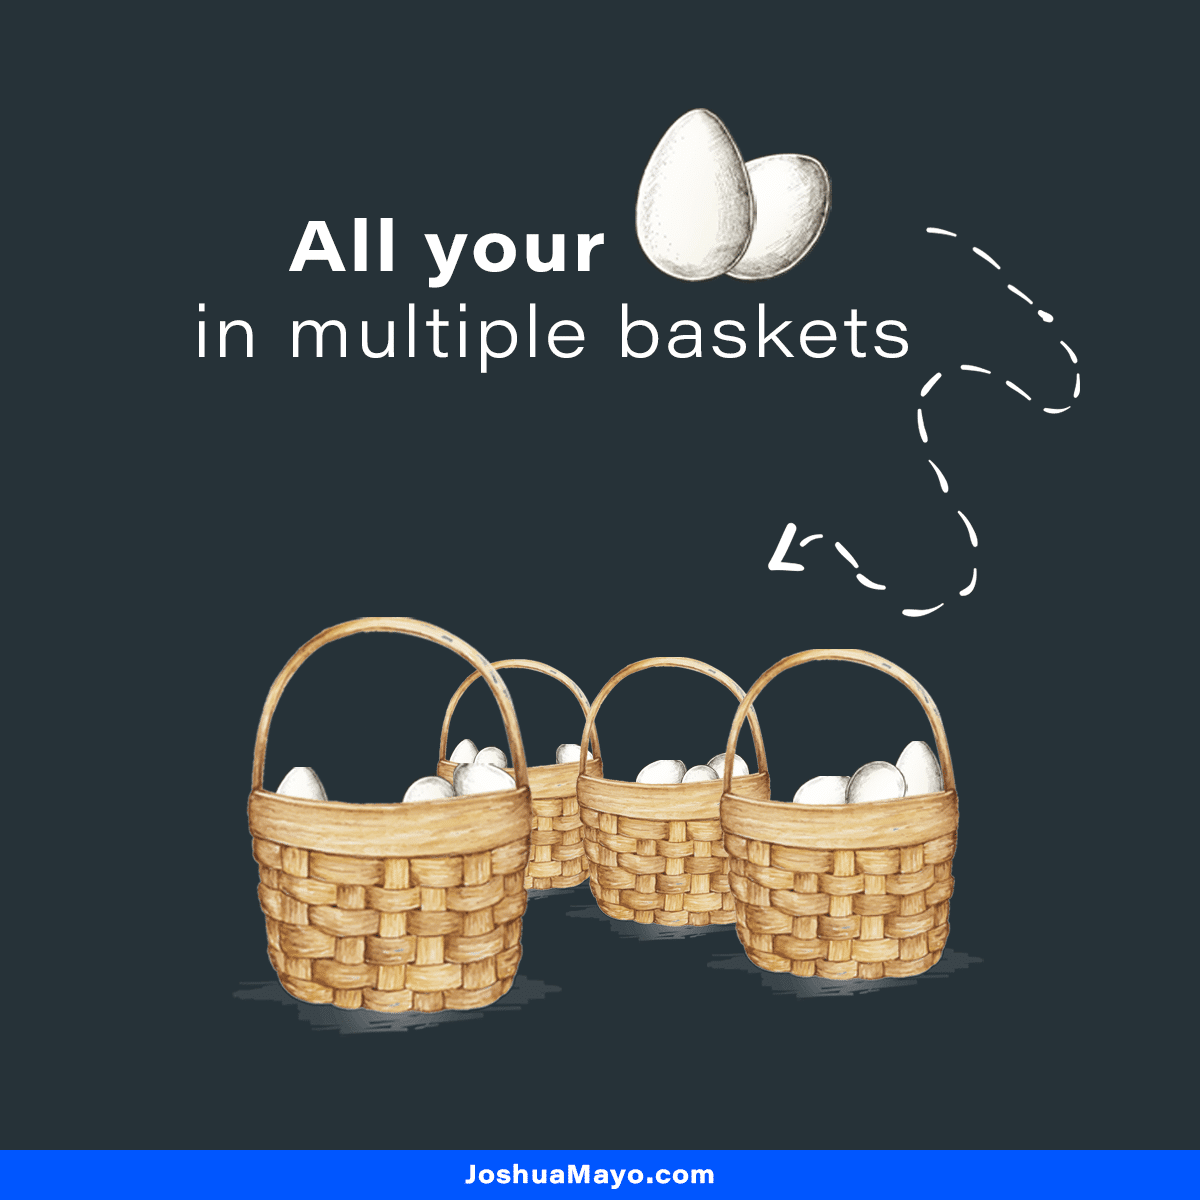 how to diversify your portfolio by putting all your eggs in multiple seoarate baskets